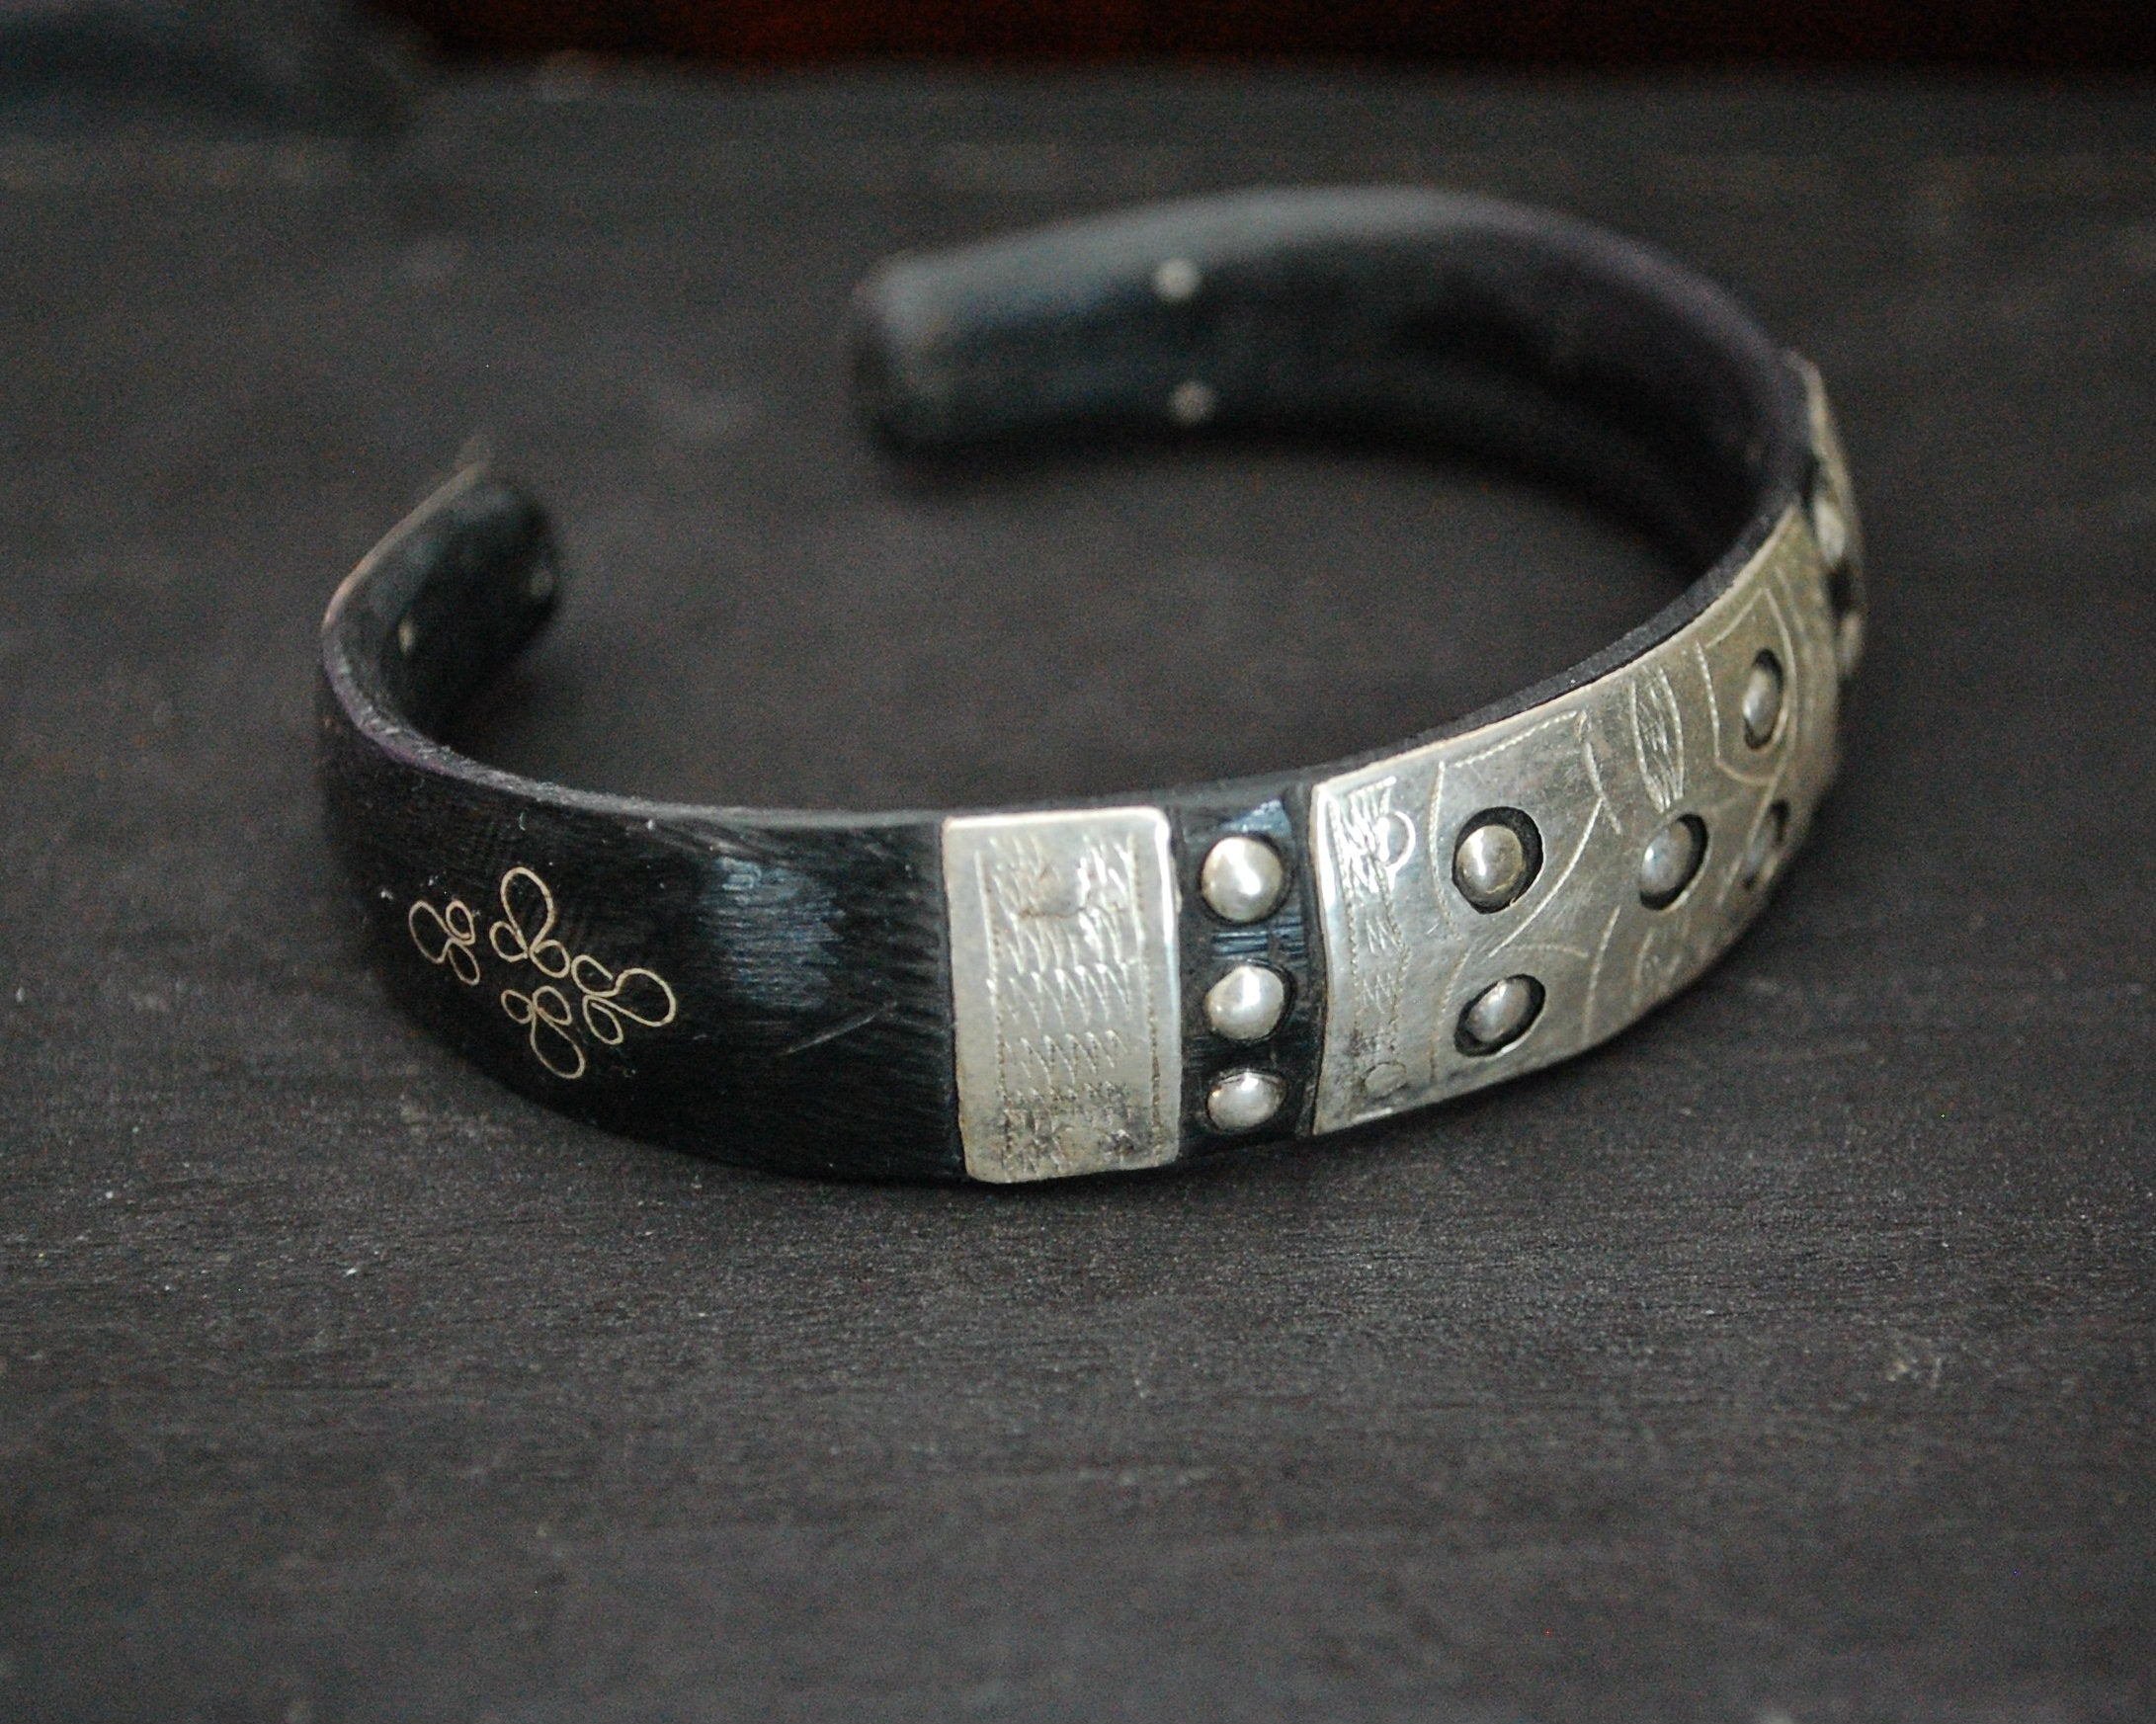 Tuareg Silver Cuff Bracelet with Engravings